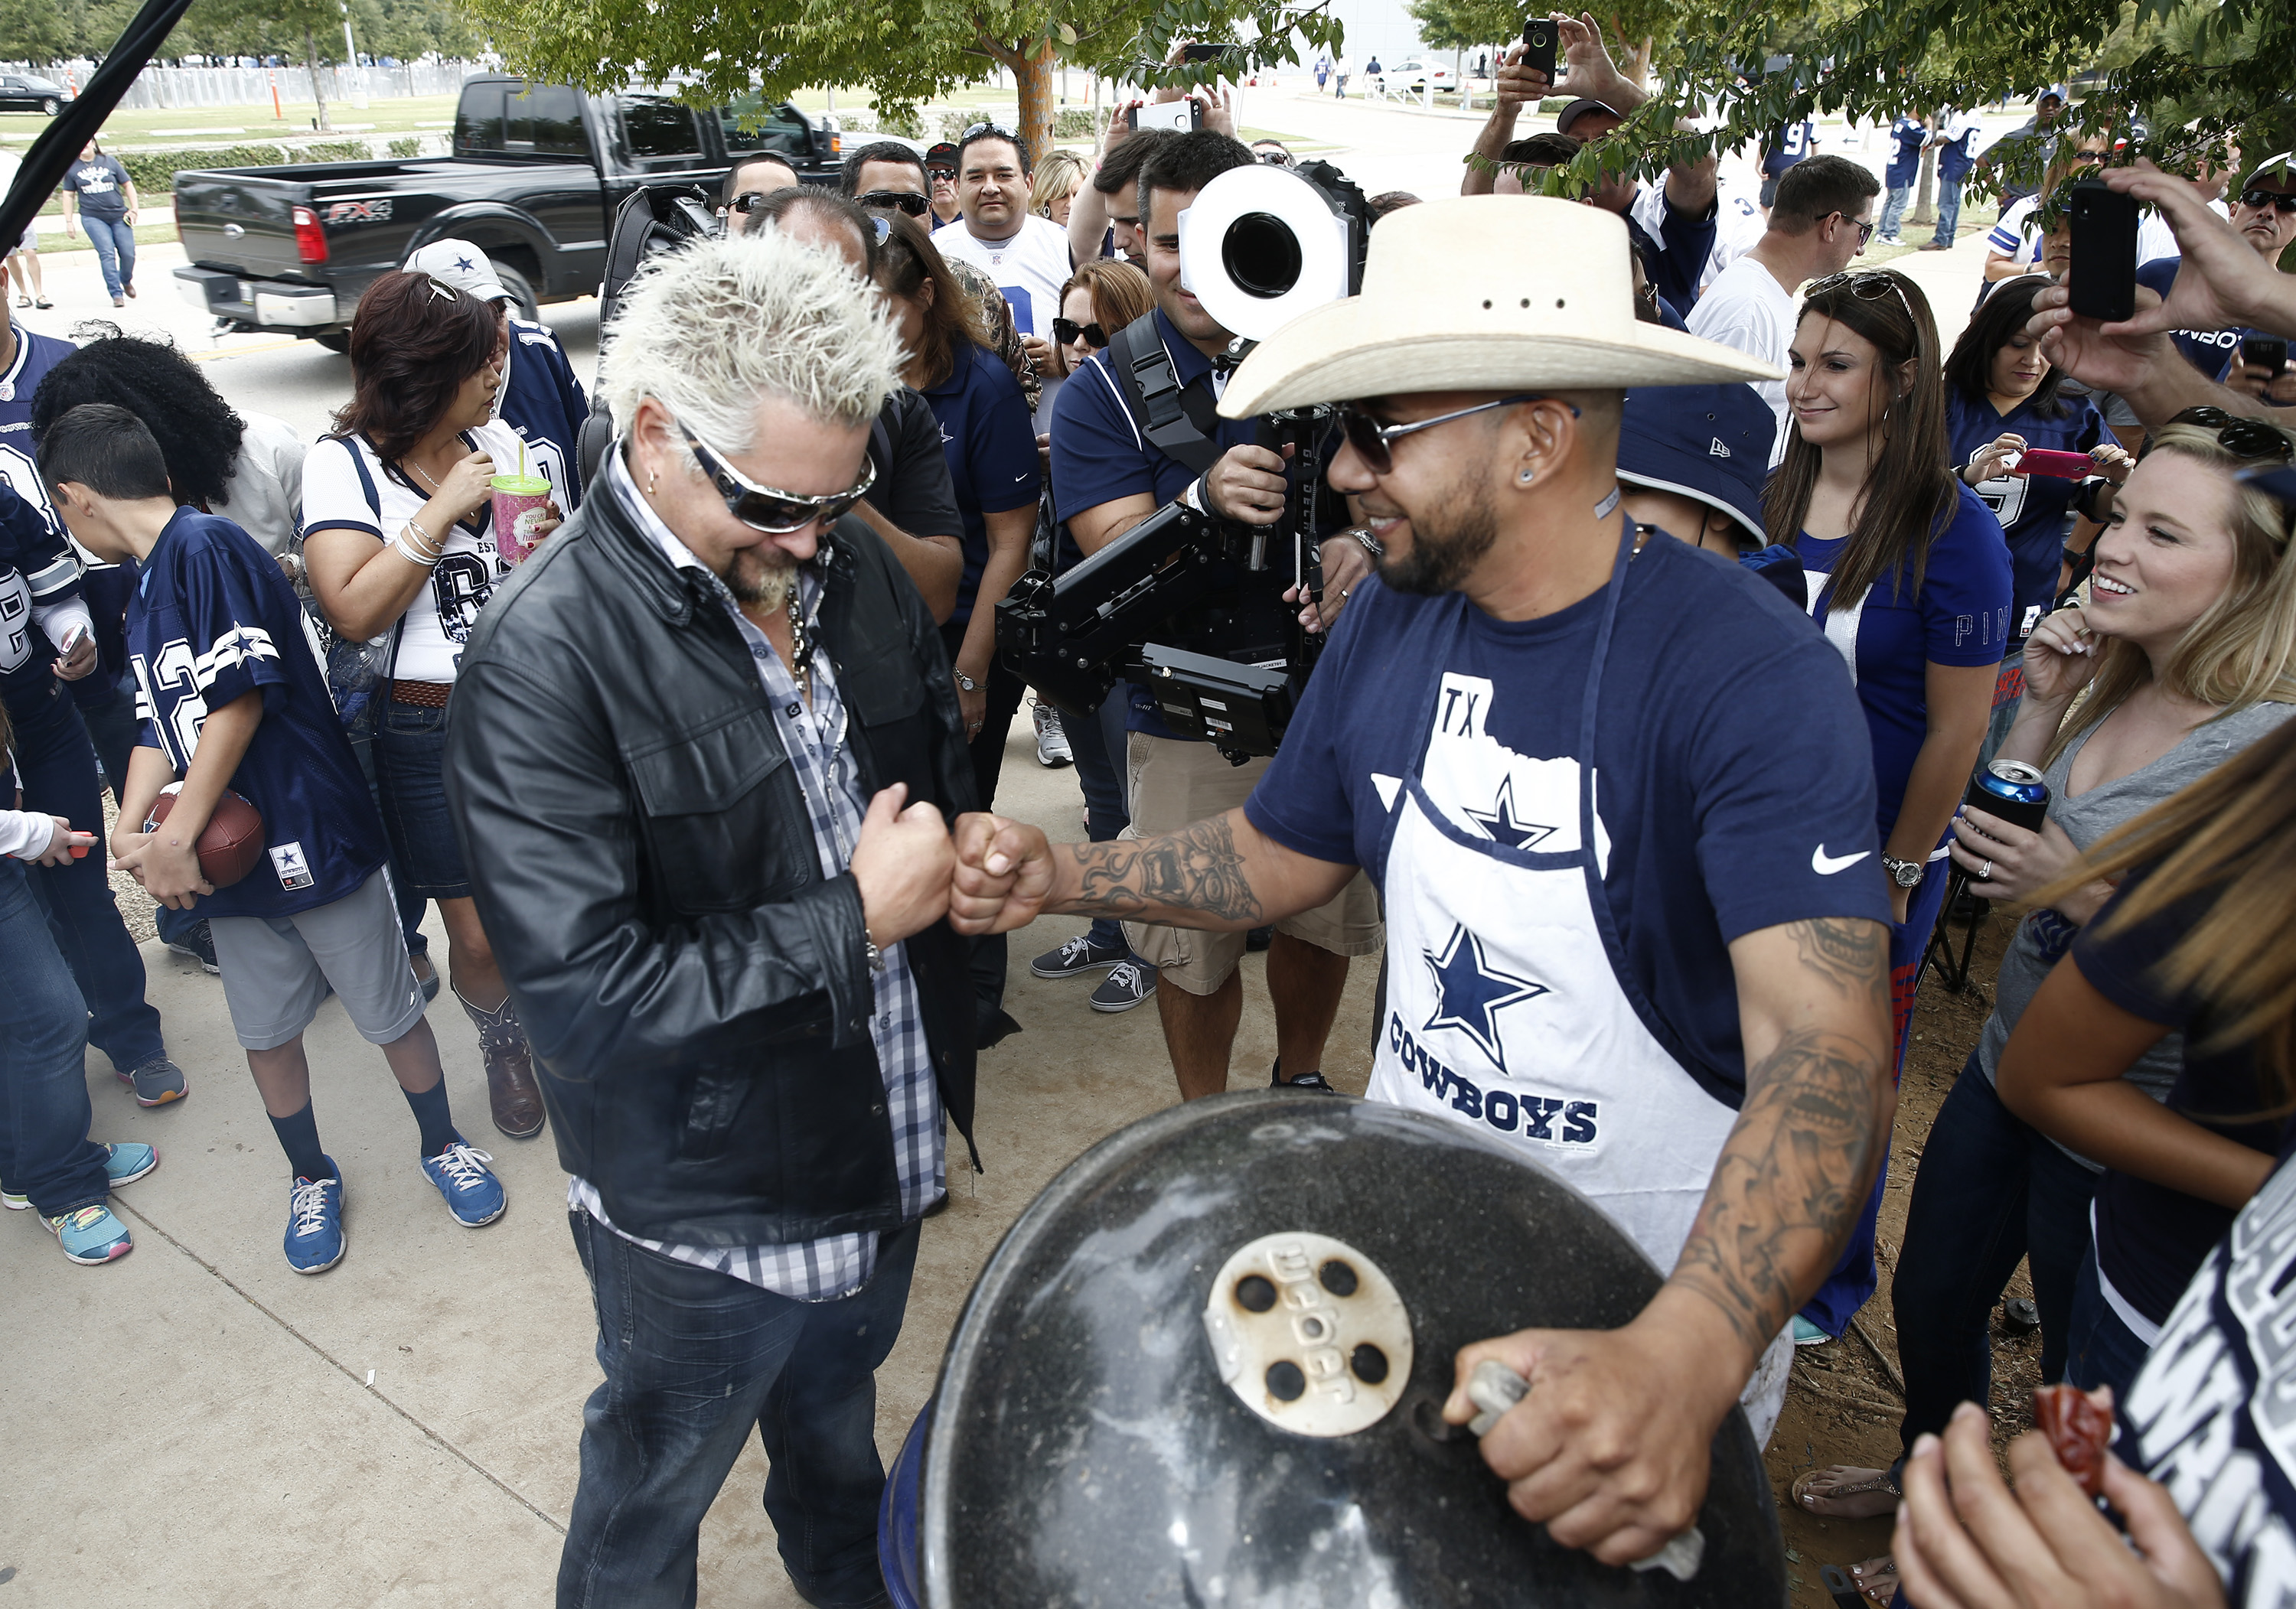 Carnival Cruise Lines' Dallas Cowboys Tailgate Takeover Featuring Chef Guy Fieri, Country Music Superstars Rascal Flatts Showcased in New Video